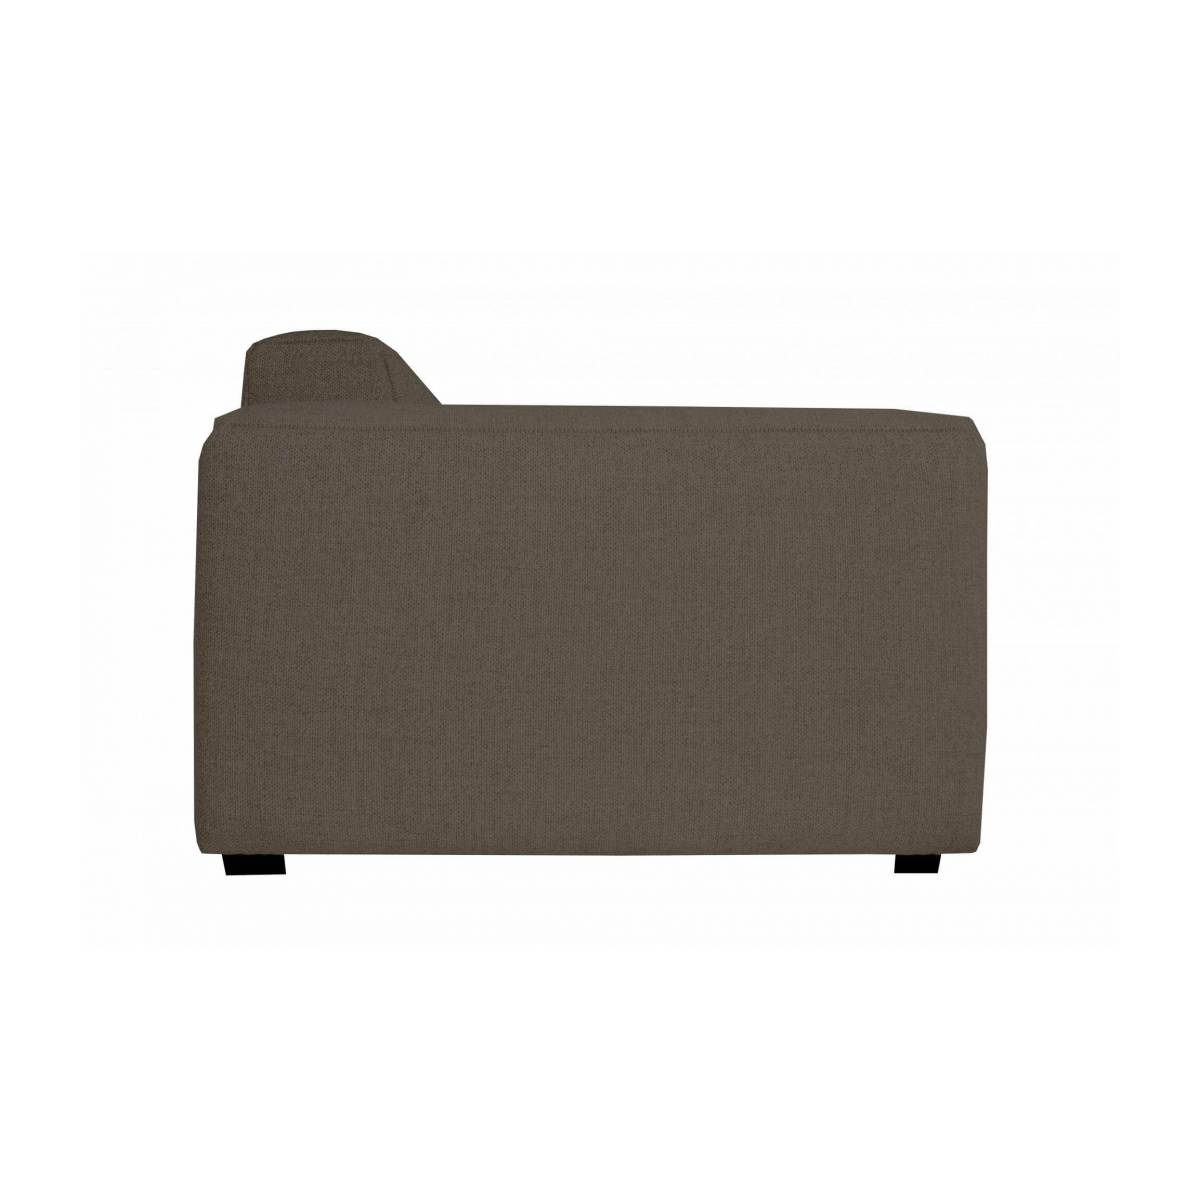 4 seater sofa in Lecce fabric, muscat n°3